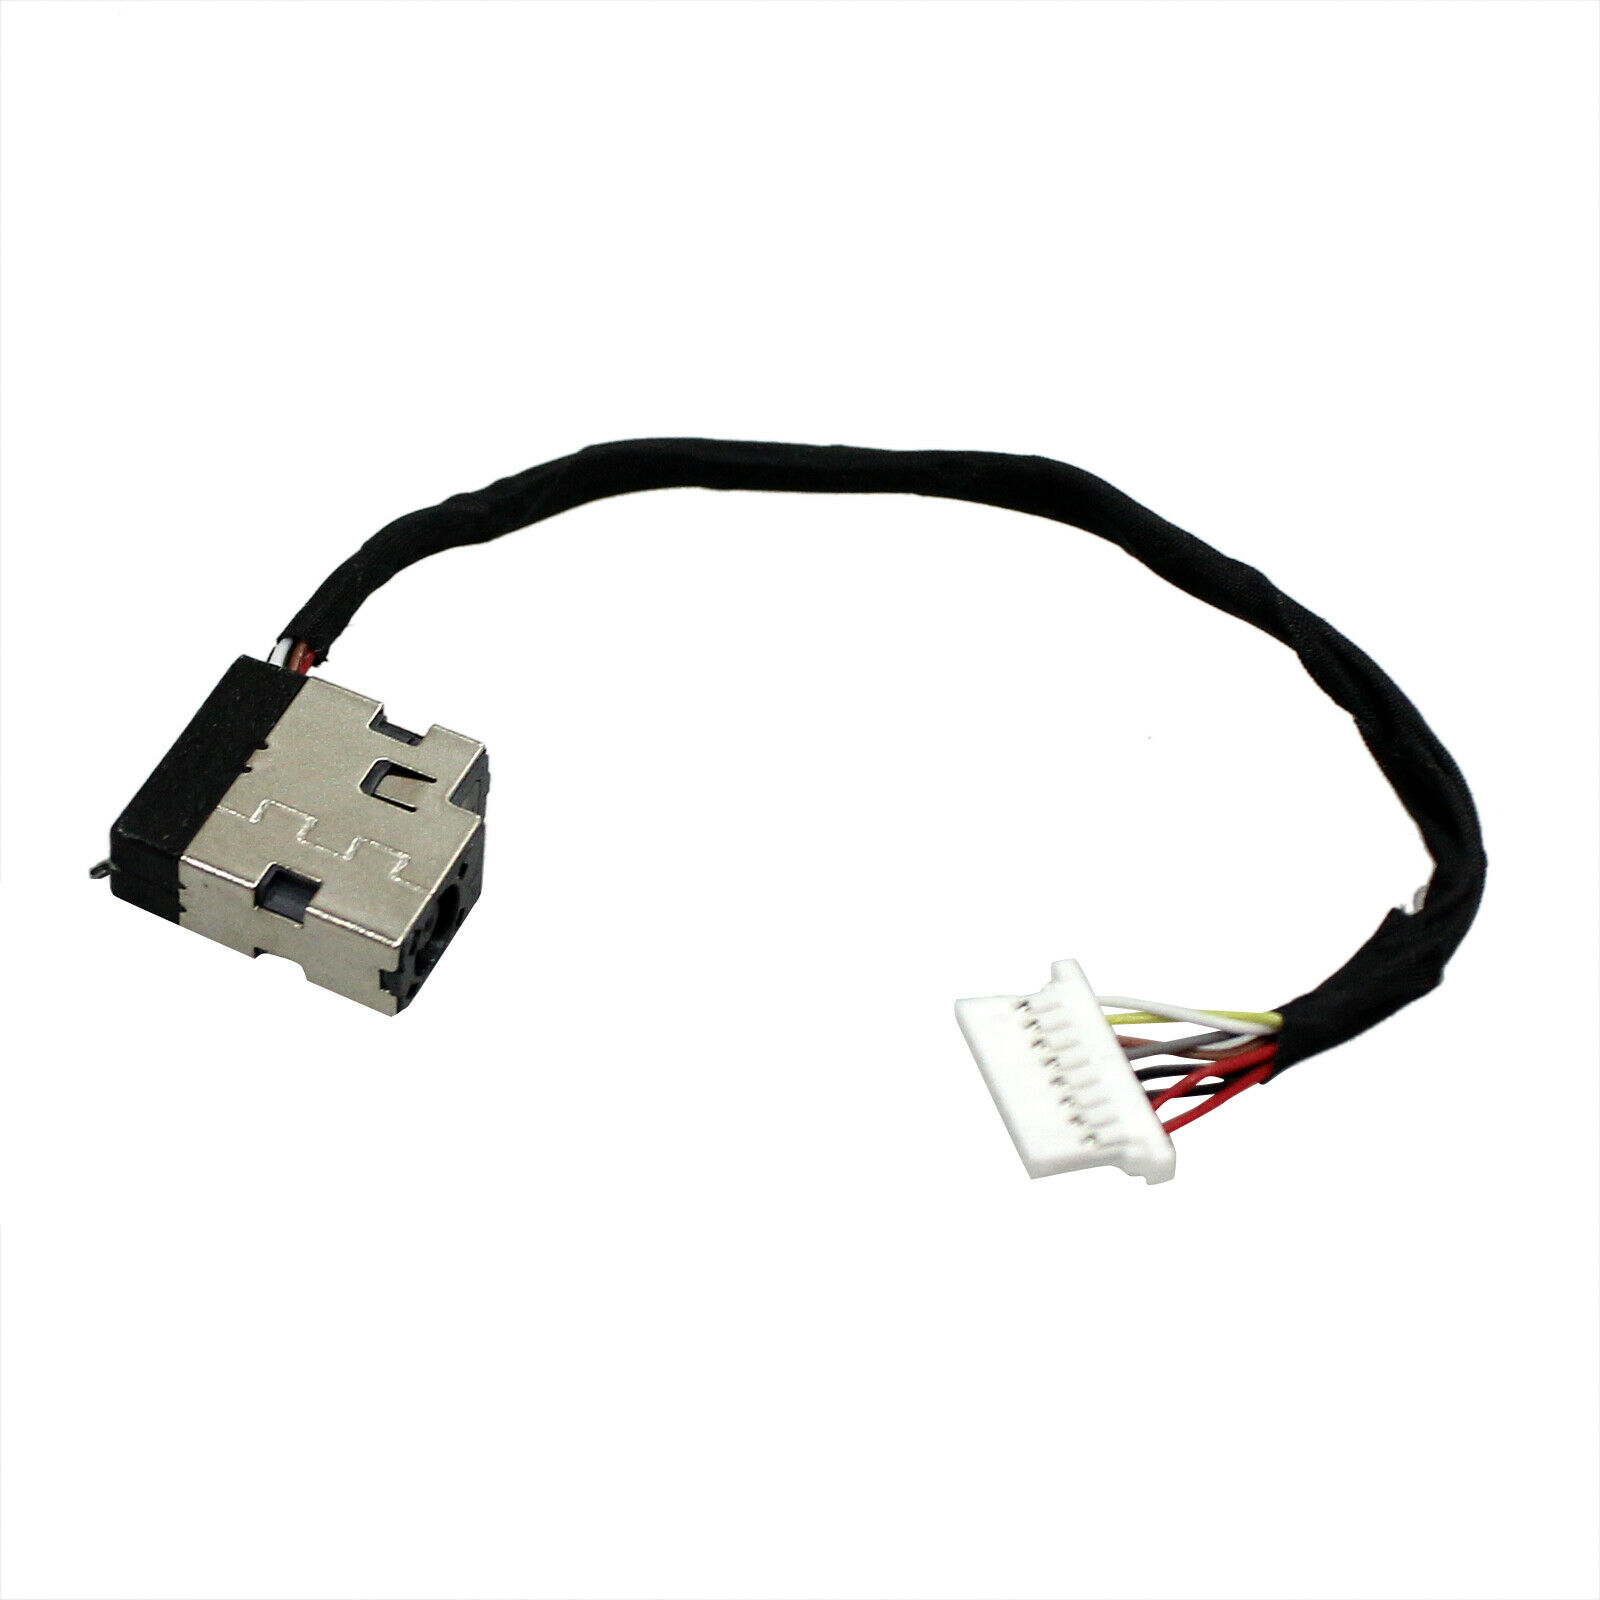 DC POWER JACK CABLE For HP ProBook 430 440 450 455 470 G3 804187-S17 827039-001